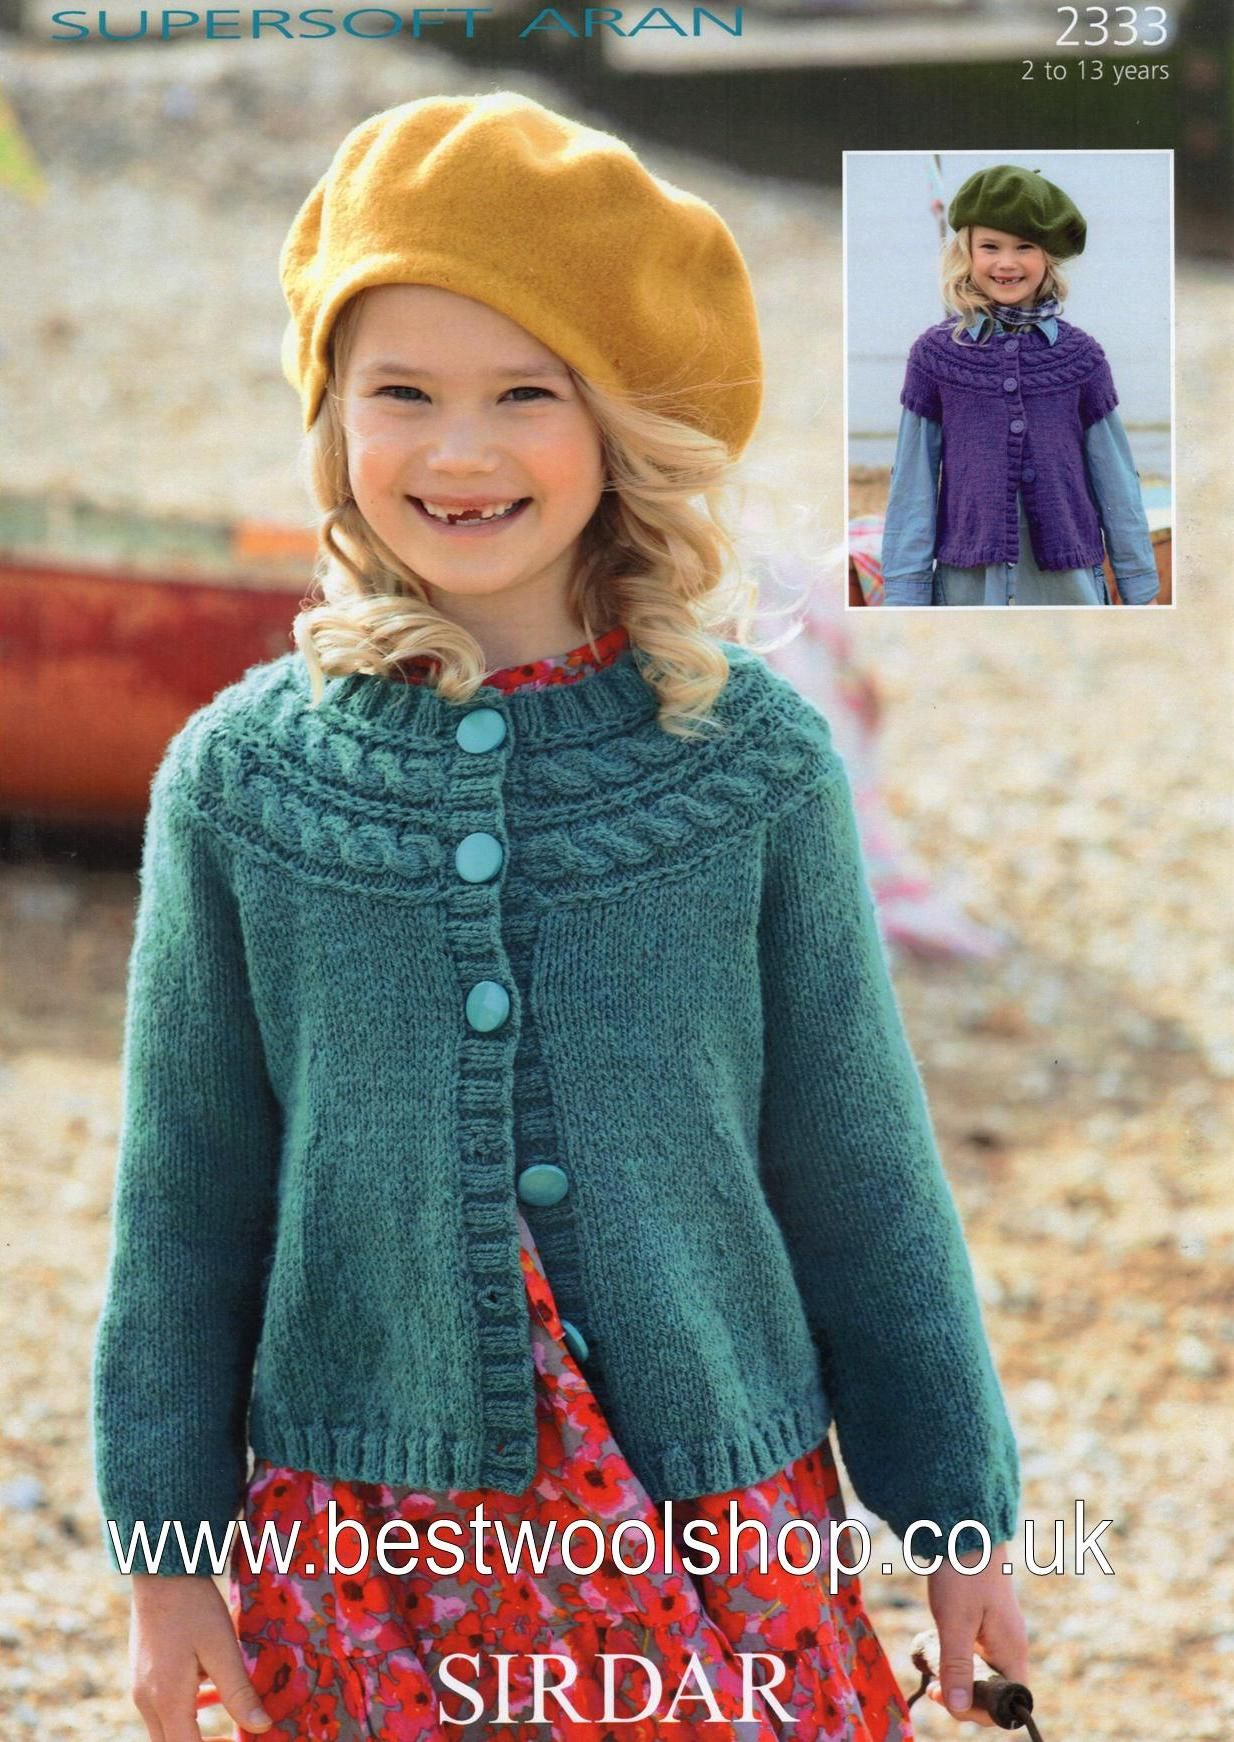 Yoke Knitting Pattern 2333 Sirdar Supersoft Aran Cabled Yolk Long Short Sleeved Cardigan Knitting Pattern To Fit 2 To 13 Years